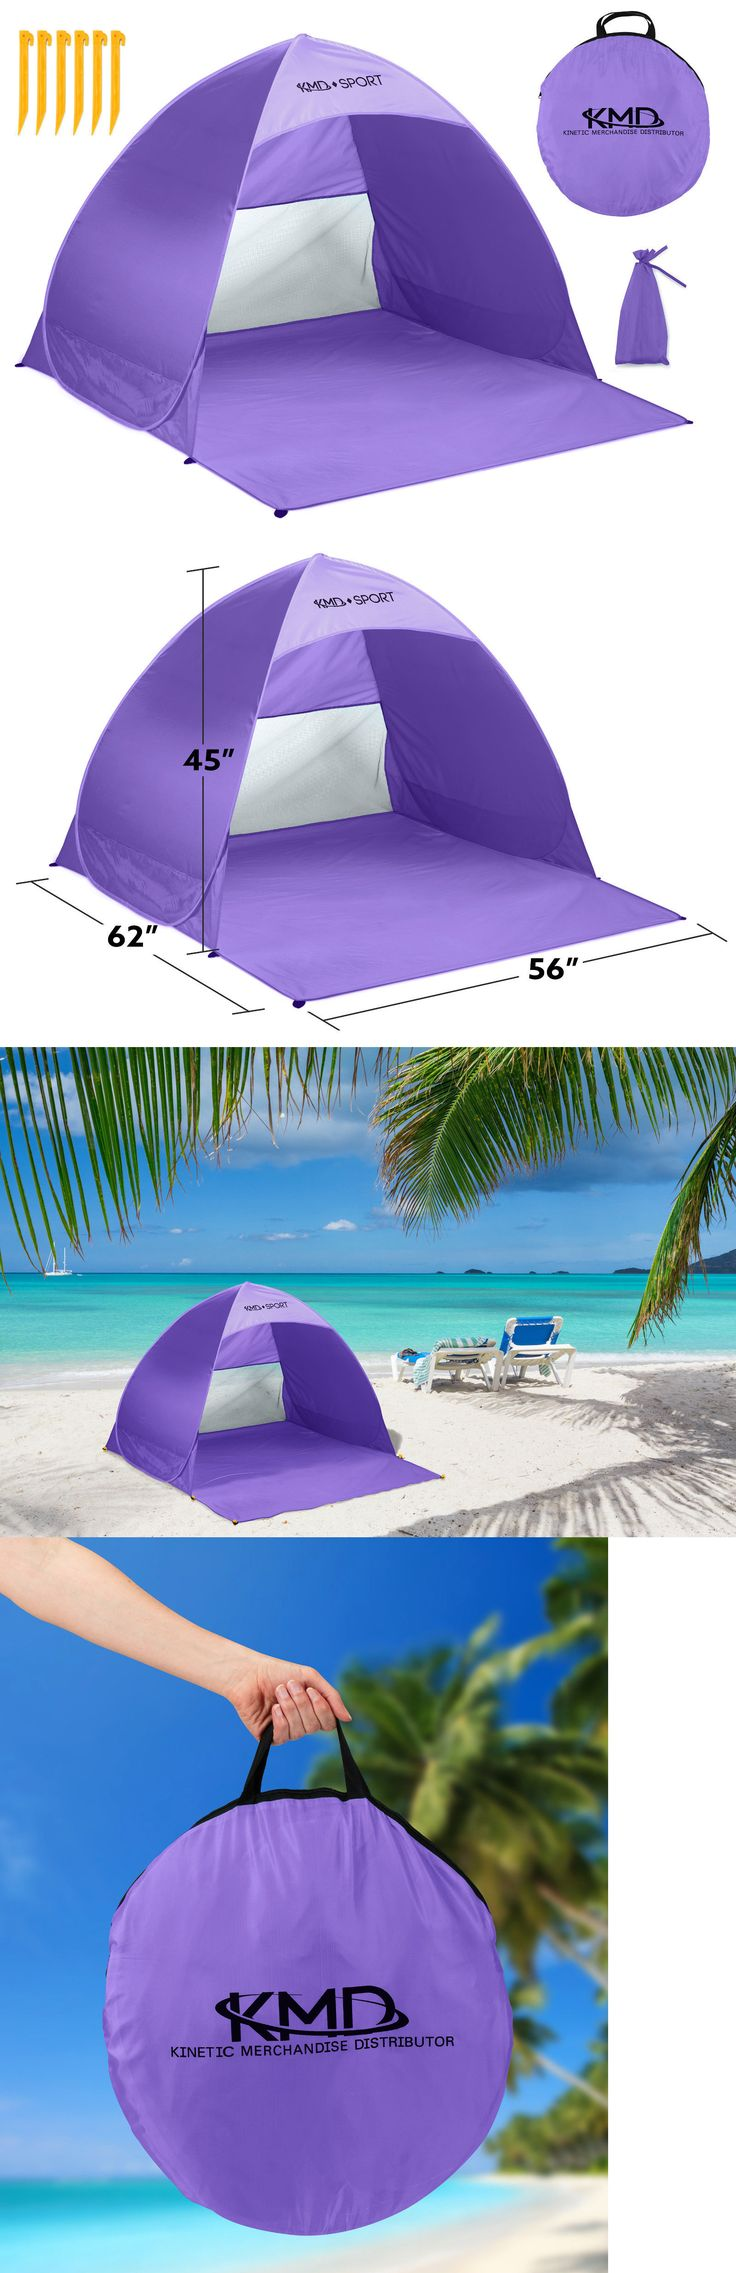 Canopies and Shelters 179011: Beach Pop Up Portable Canopy Sun Shade Privacy Shelter Outdoor Camping Tent Mesh -> BUY IT NOW ONLY: $32.99 on eBay!